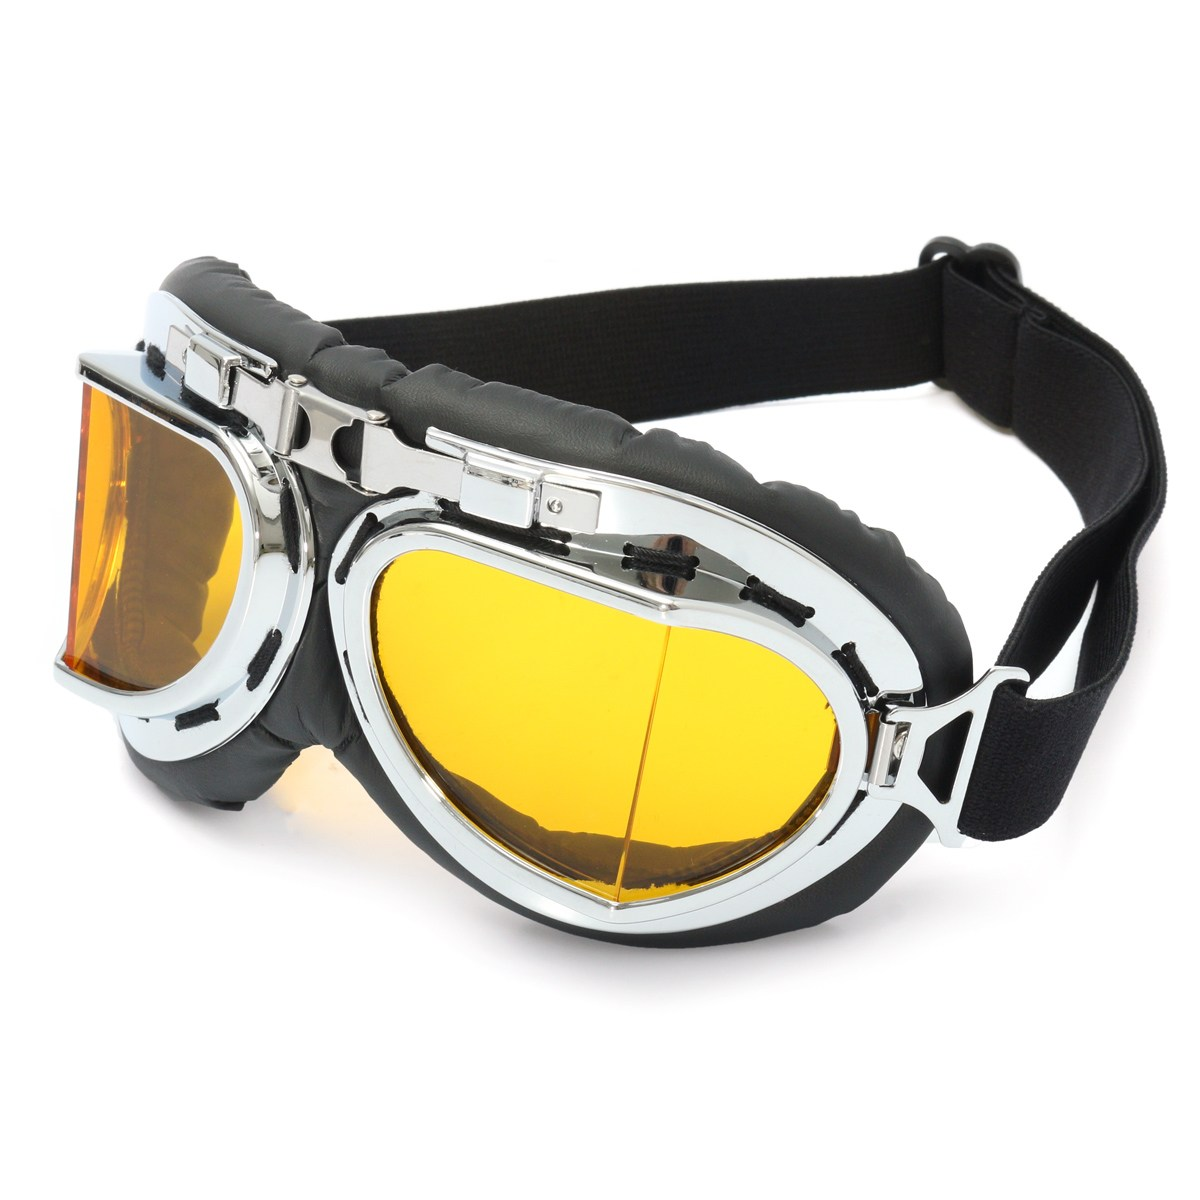 NEW Safurance Scooter Goggle Glasses Pilot Motorcycle Ski Goggle Smoke Lens Workplace Safety Eye Protection линза shift white goggle replacement lens spark синий 20936 902 os